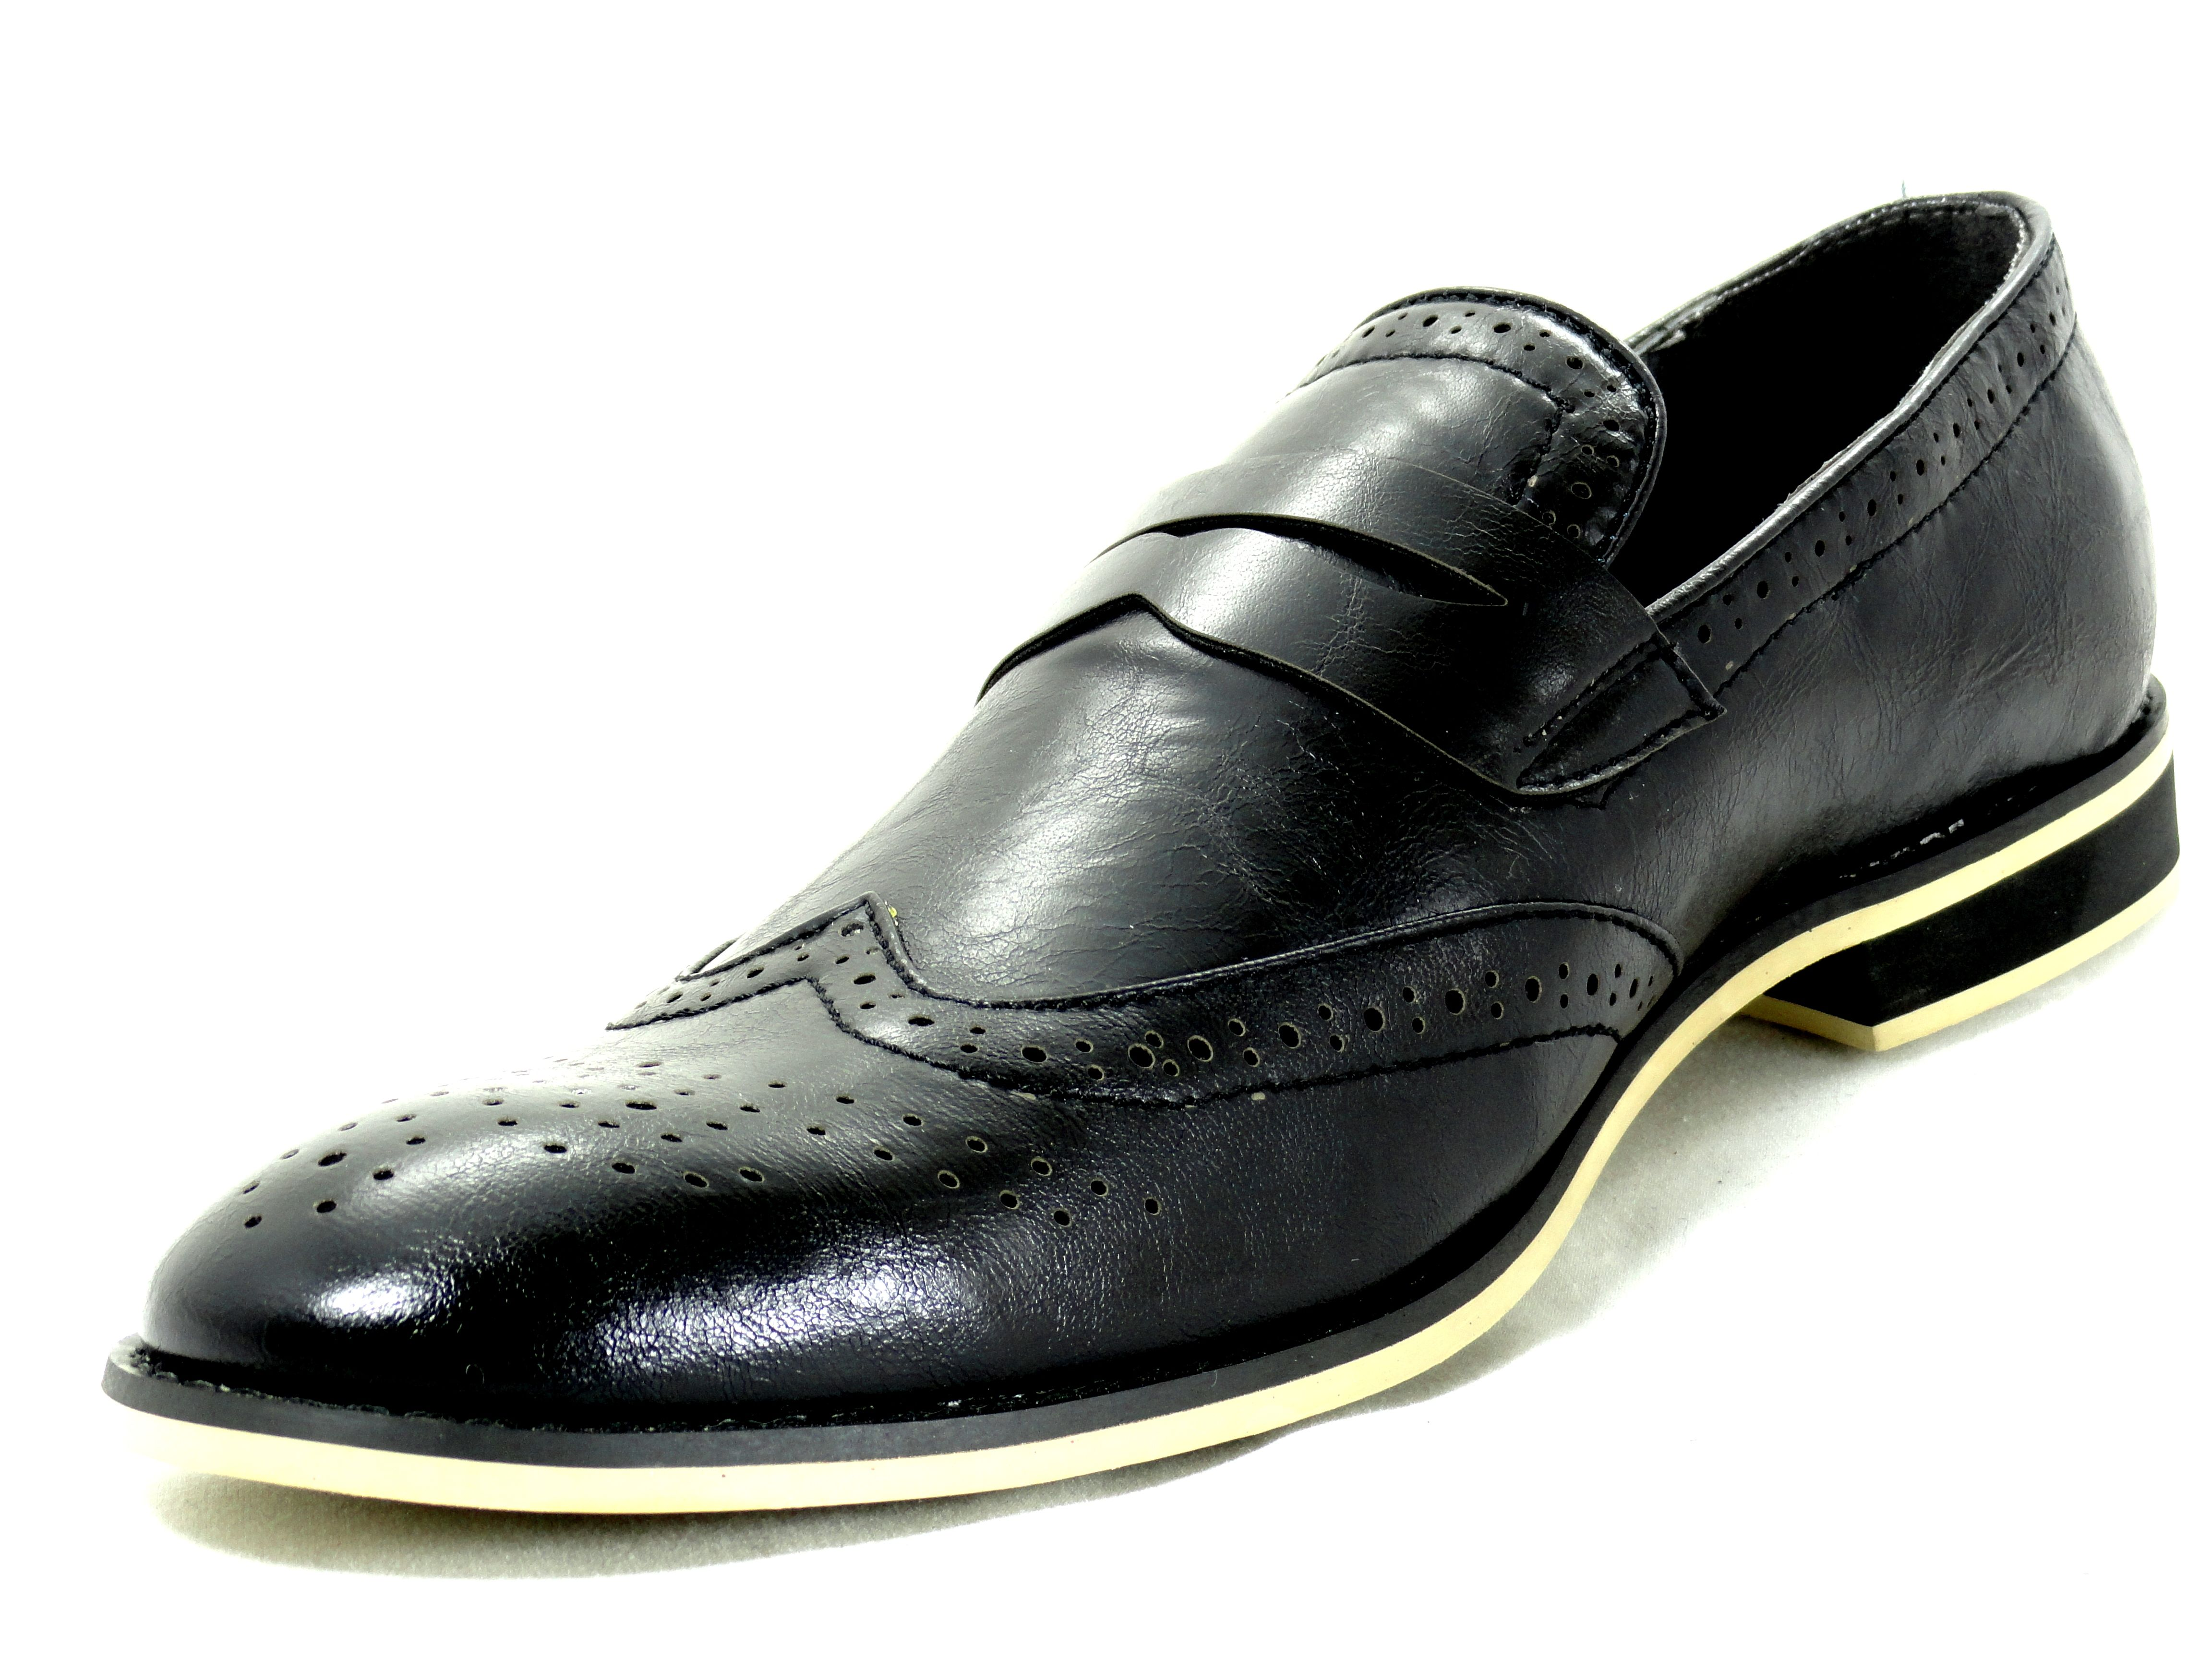 new mens dress shoes martello wingtip loafers slip on